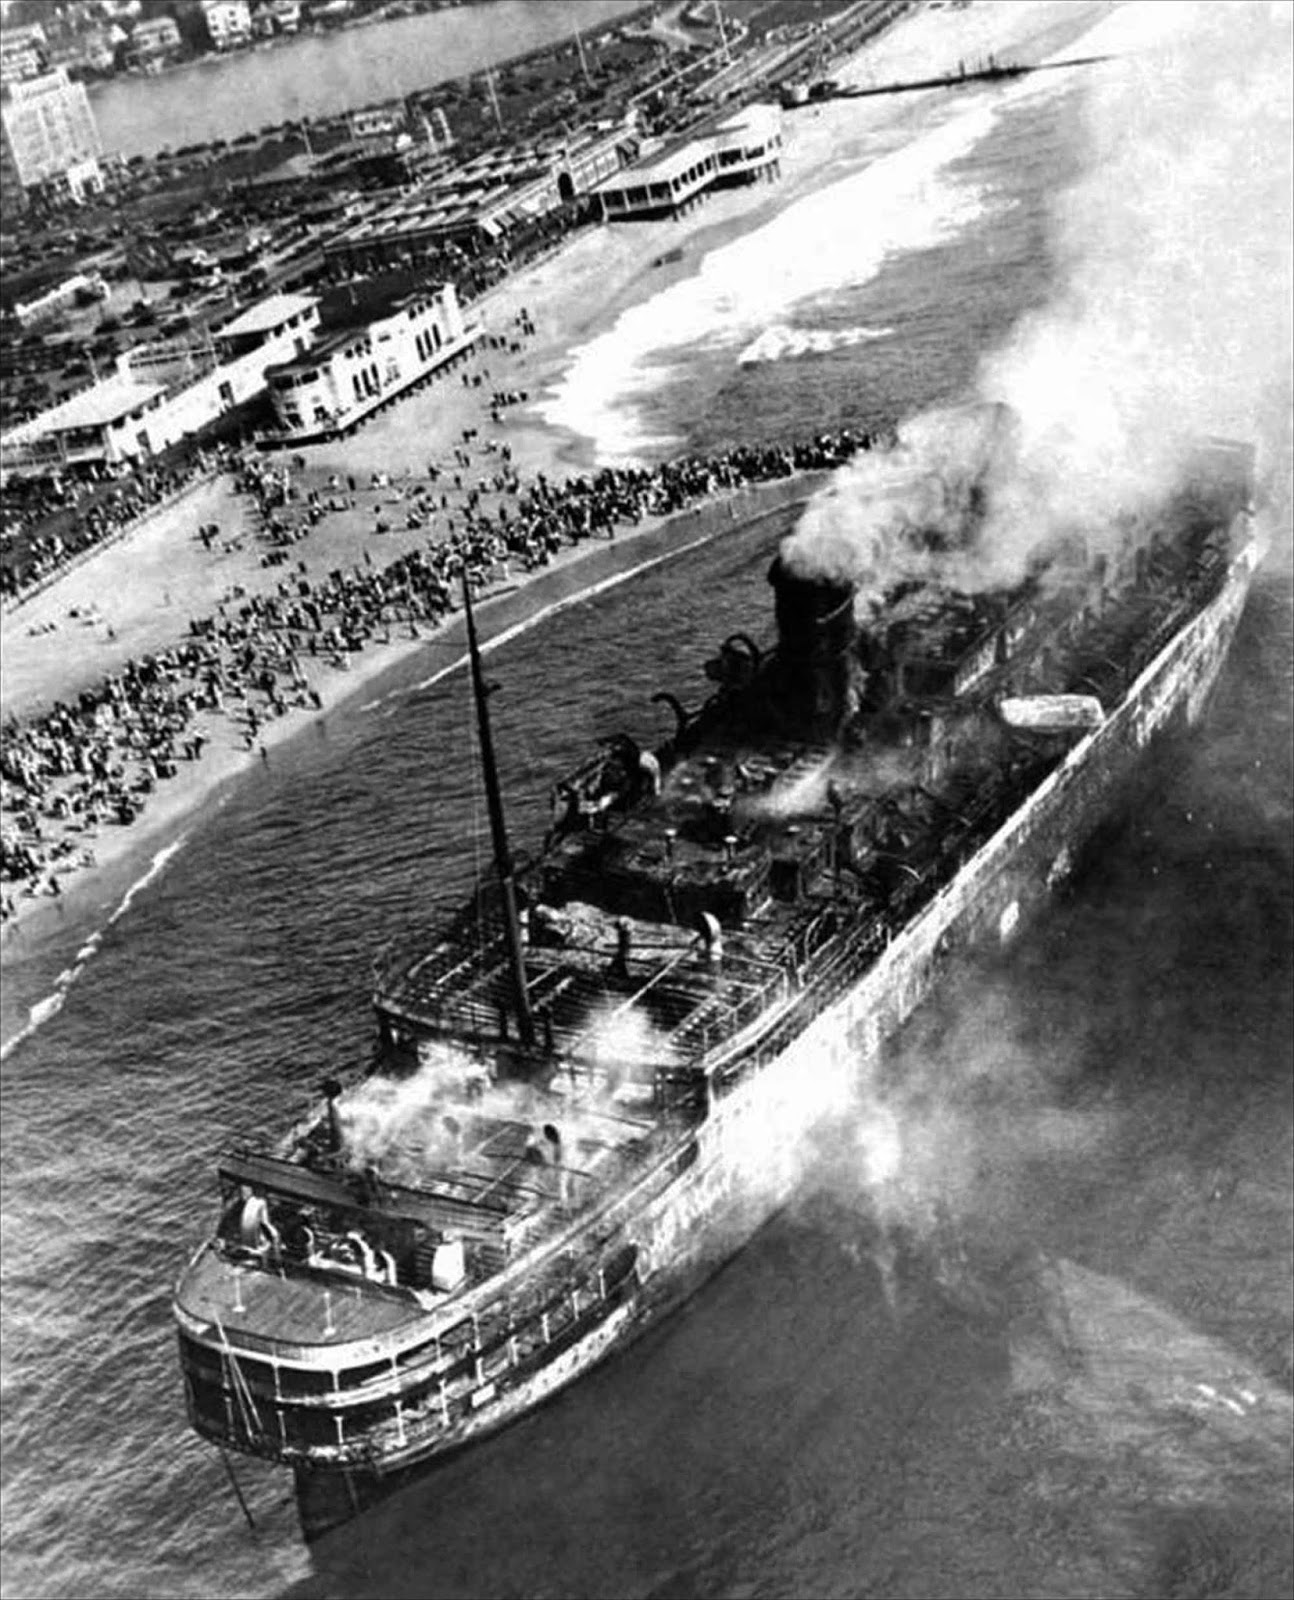 Although there were 42 water hydrants on board, the system was designed with the assumption that no more than six would ever have to be used at any one time. When the emergency aboard the Morro Castle occurred, the crew opened virtually all working hydrants, dropping the water pressure to unusable levels everywhere.